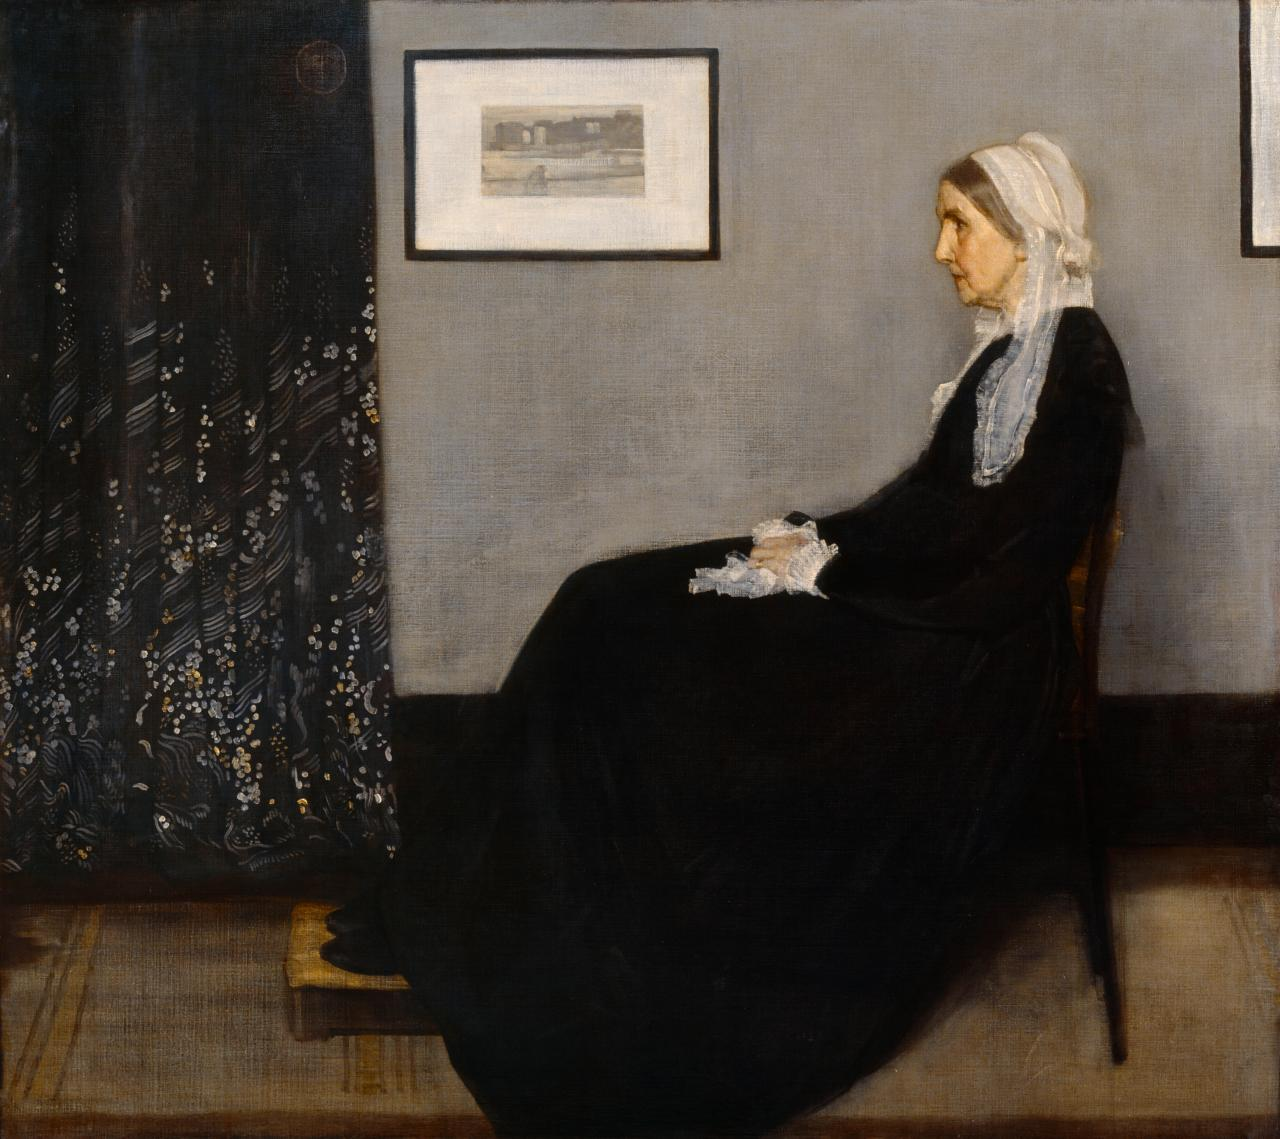 James McNeill Whistler, Arrangement in Grey and Black No.1 (1871)